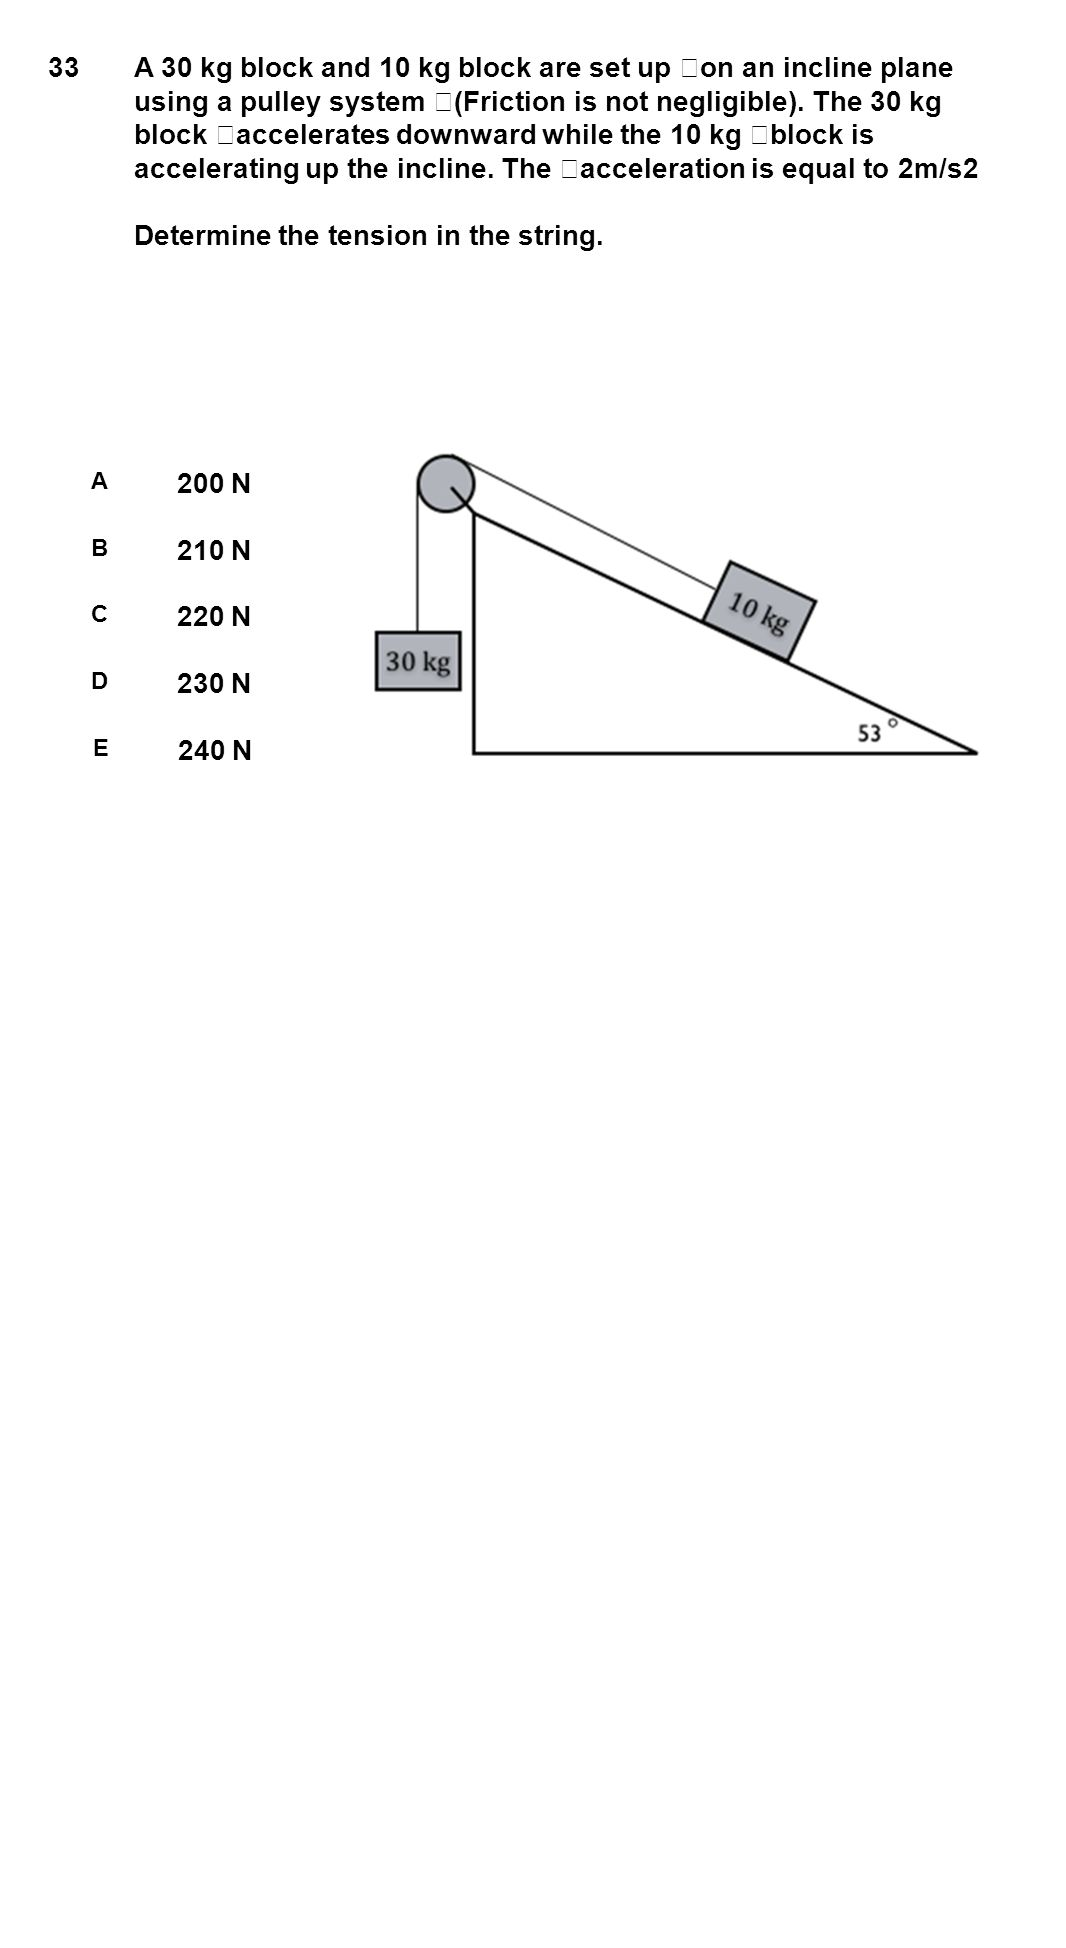 33 A 30 kg block and 10 kg block are set up on an incline plane using a pulley system (Friction is not negligible). The 30 kg block accelerates downwa